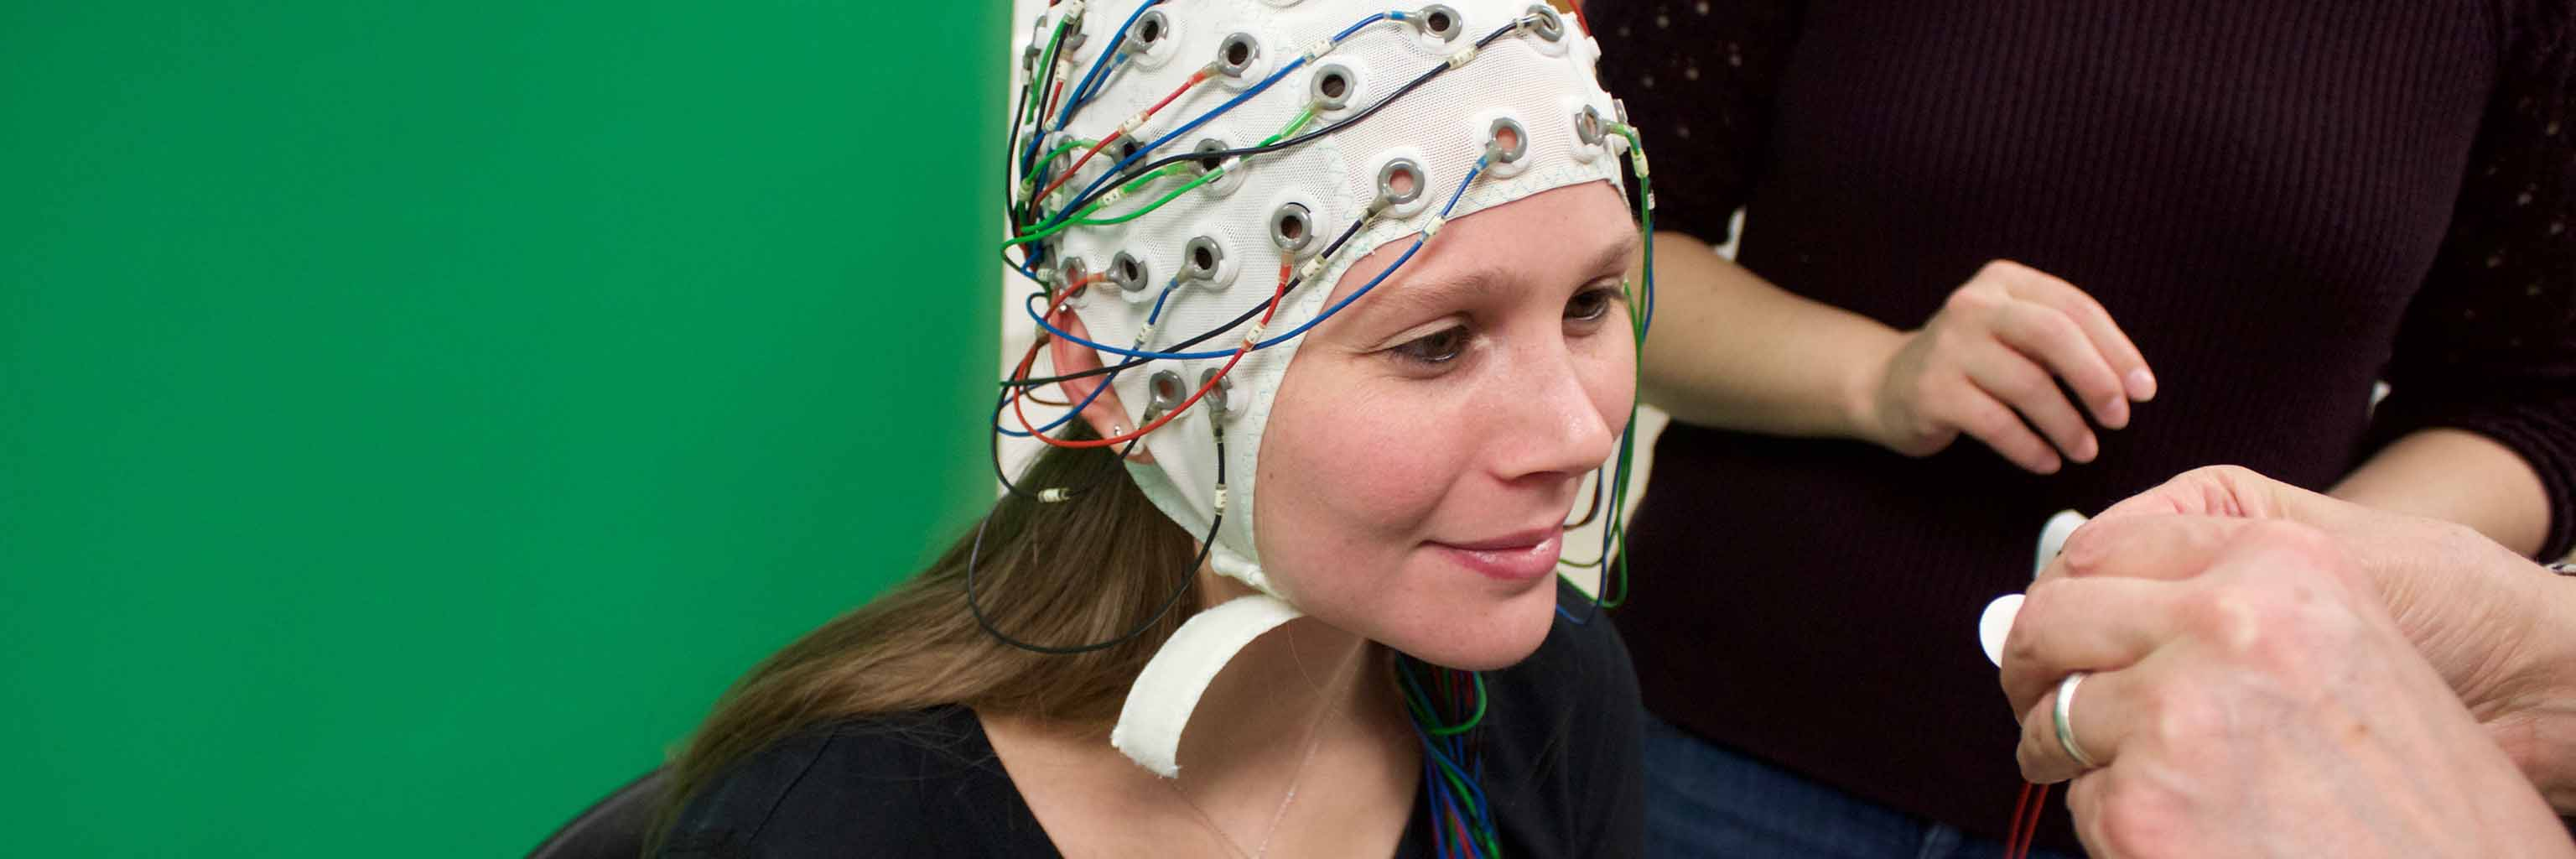 woman with a special cap with wires that analyzes her brain